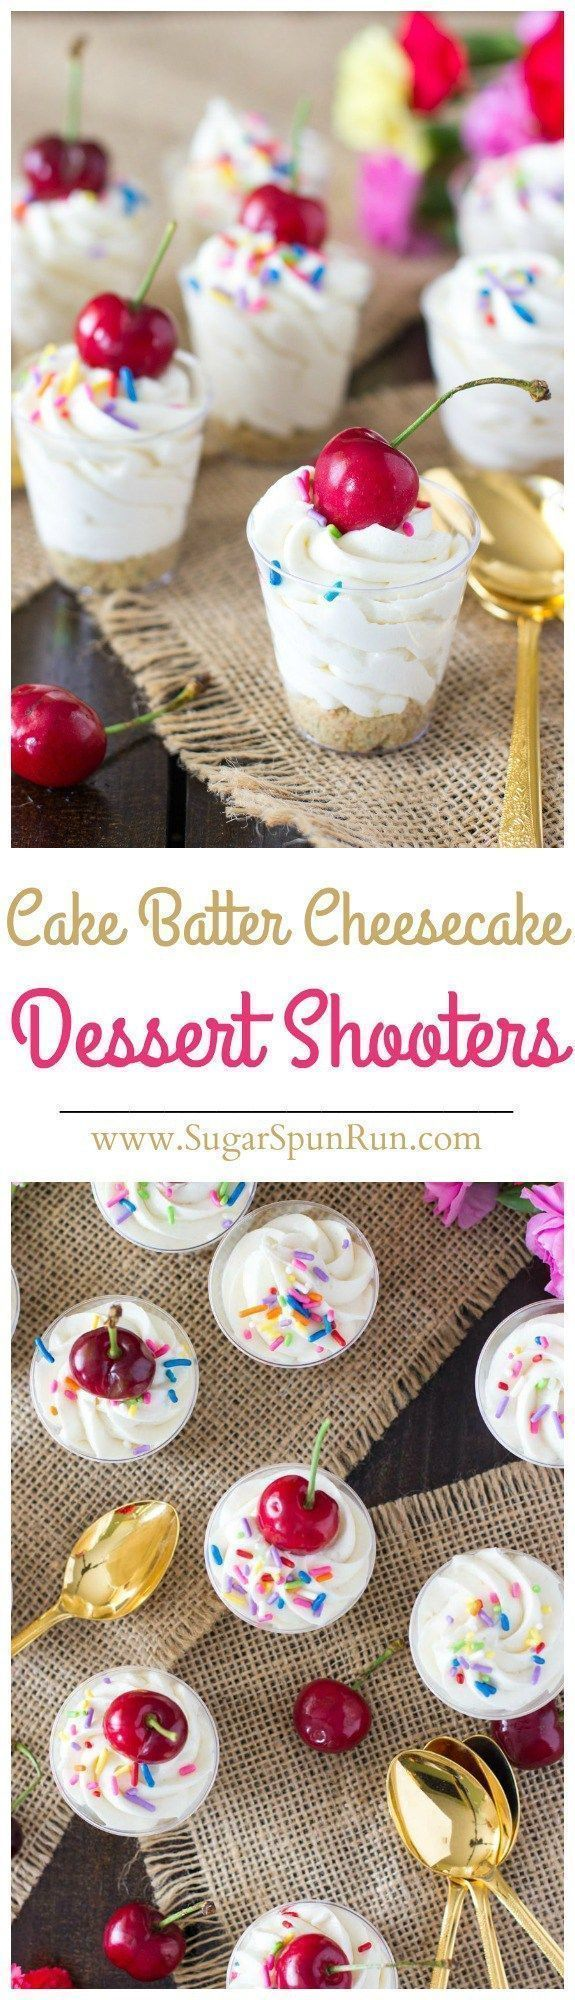 Cake Batter Cheesecake Dessert Shooters -- These things are INSANELY good! via SugarSpunRun.com #cakebatter Cake Batter Cheesecake Dessert Shooters -- These things are INSANELY good! via SugarSpunRun.com #dessertshooters Cake Batter Cheesecake Dessert Shooters -- These things are INSANELY good! via SugarSpunRun.com #cakebatter Cake Batter Cheesecake Dessert Shooters -- These things are INSANELY good! via SugarSpunRun.com #dessertshooters Cake Batter Cheesecake Dessert Shooters -- These things ar #dessertshooters